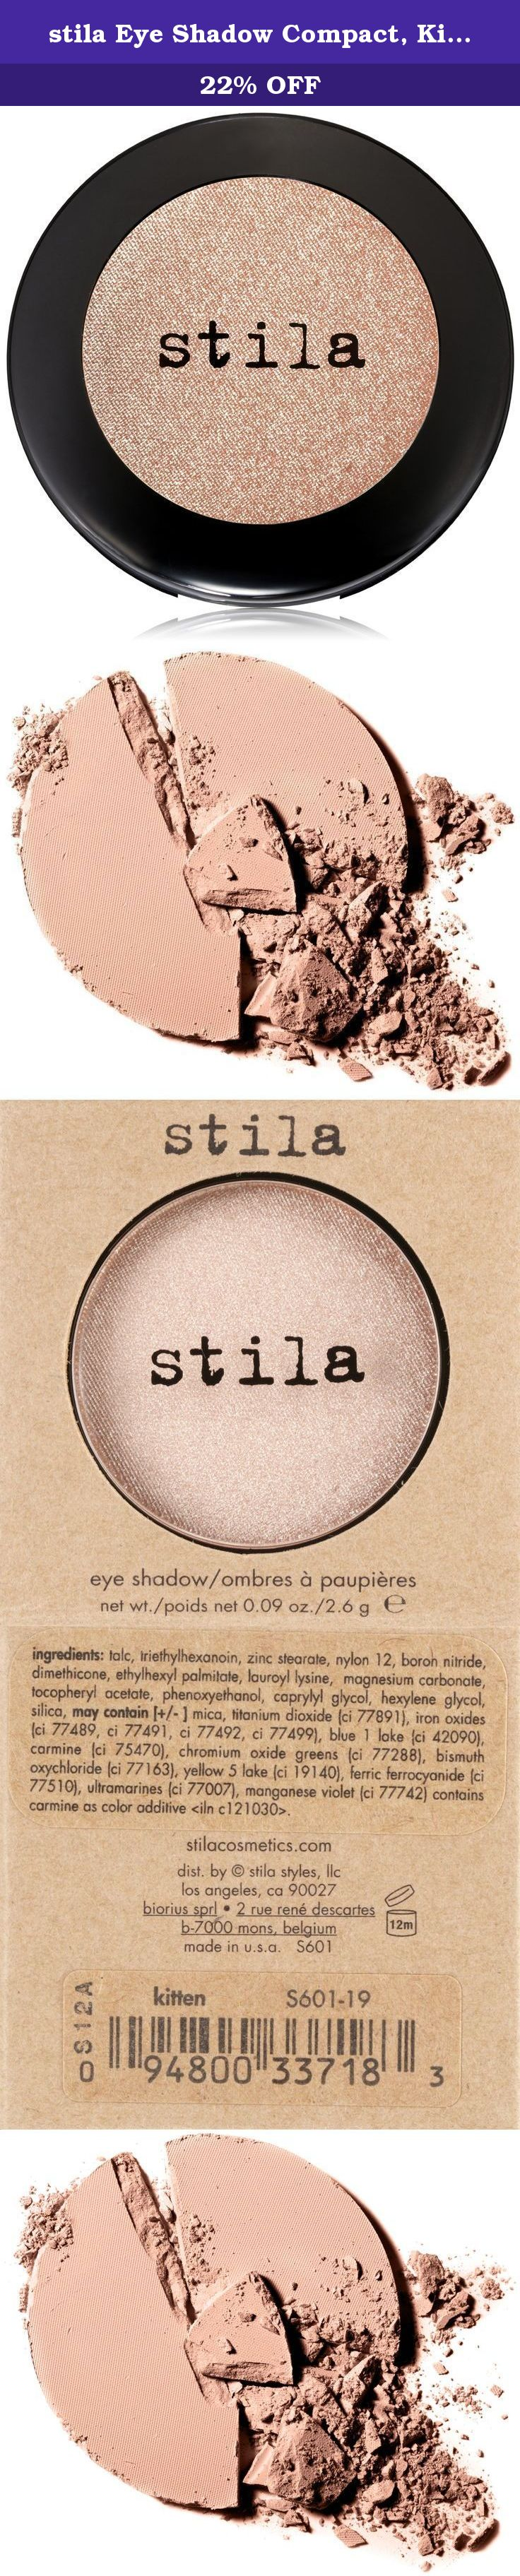 Stila Eye Shadow Compact Kitten Award Winning Pressed Formulas From Classic Neutrals To The Hottest Fashion Hues Eyeshadow Shadow Beauty And Personal Care